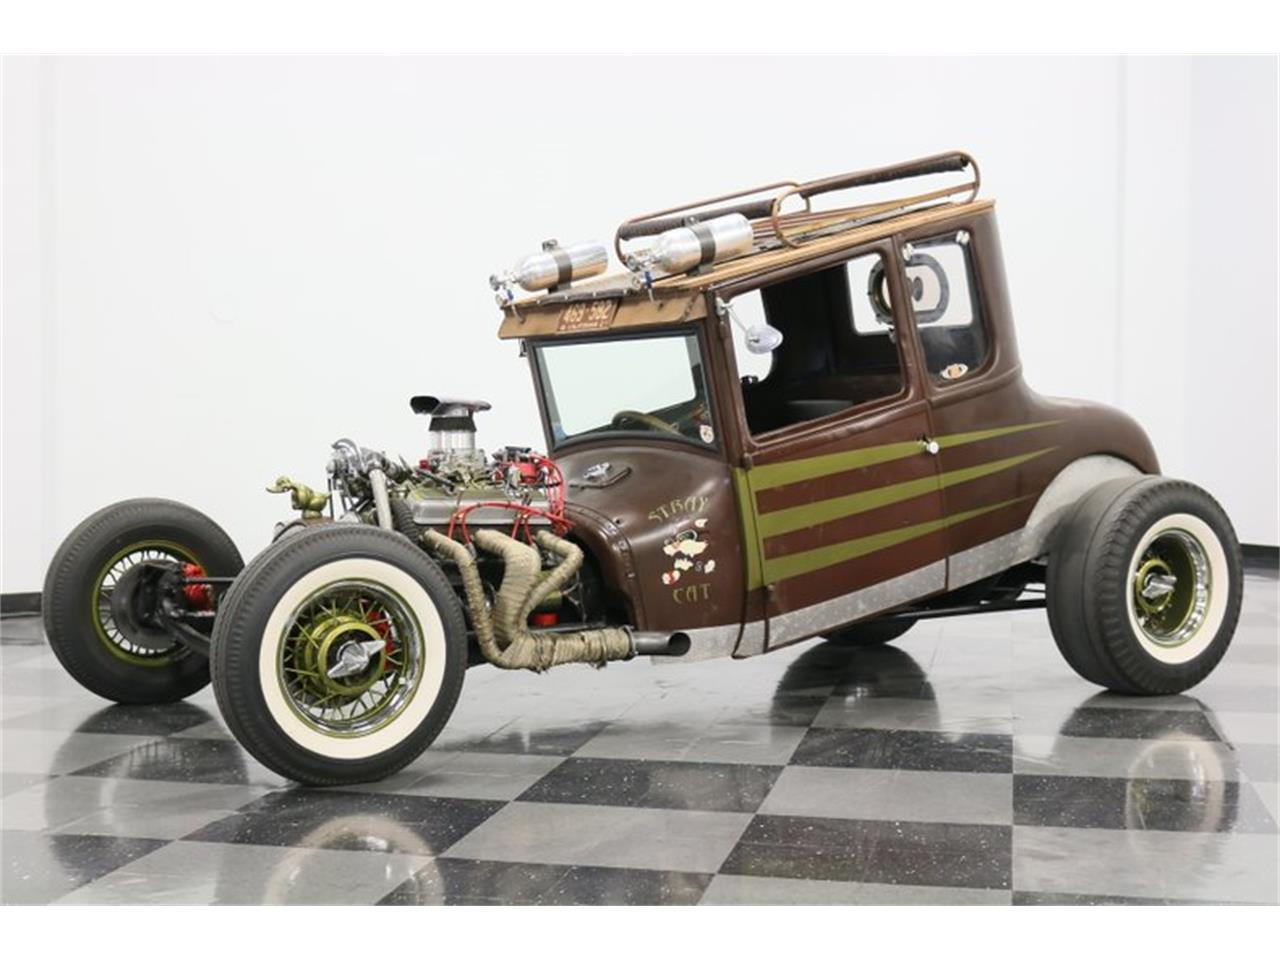 Large Picture of 1927 Ford Coupe located in Texas Offered by Streetside Classics - Dallas / Fort Worth - Q4LA